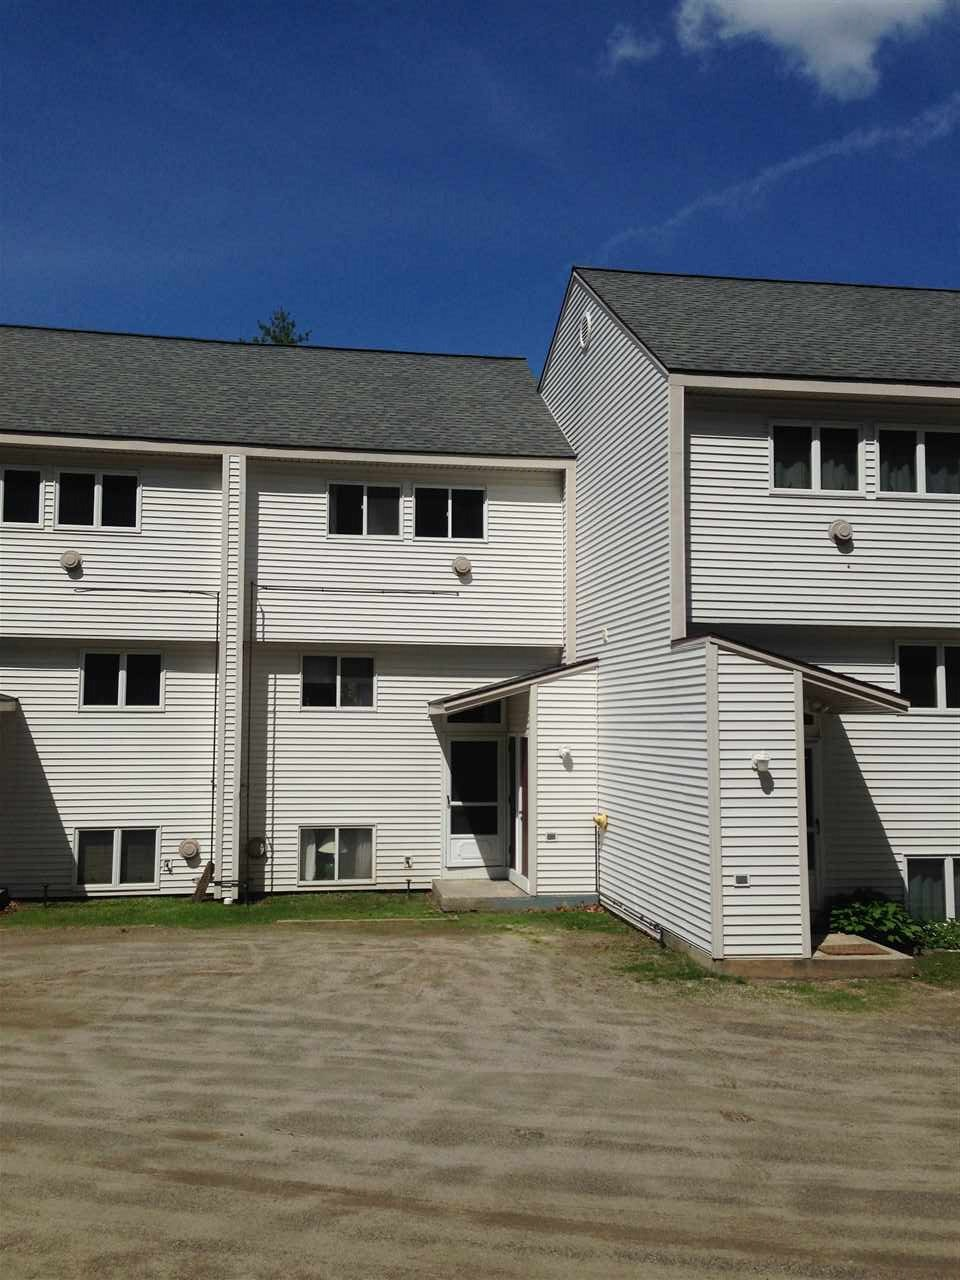 LUDLOW VT Condo for sale $$175,000 | $138 per sq.ft.